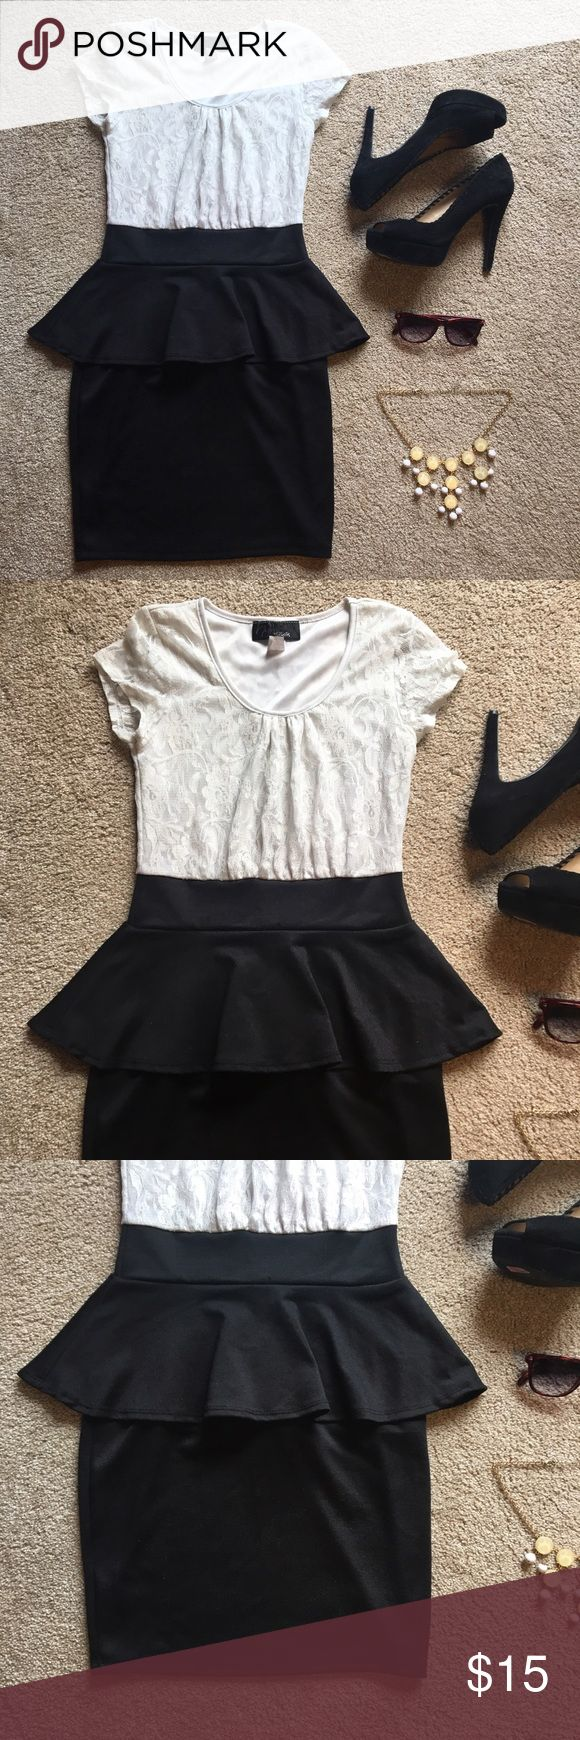 Classy Black and White Peplum Dress with Lace Classy black and white peplum dress. The top part is white lace and the bottom part is a black peplum skirt. If you are also interested in the necklace, I can tag you in that listing. Hypnotik Dresses Mini